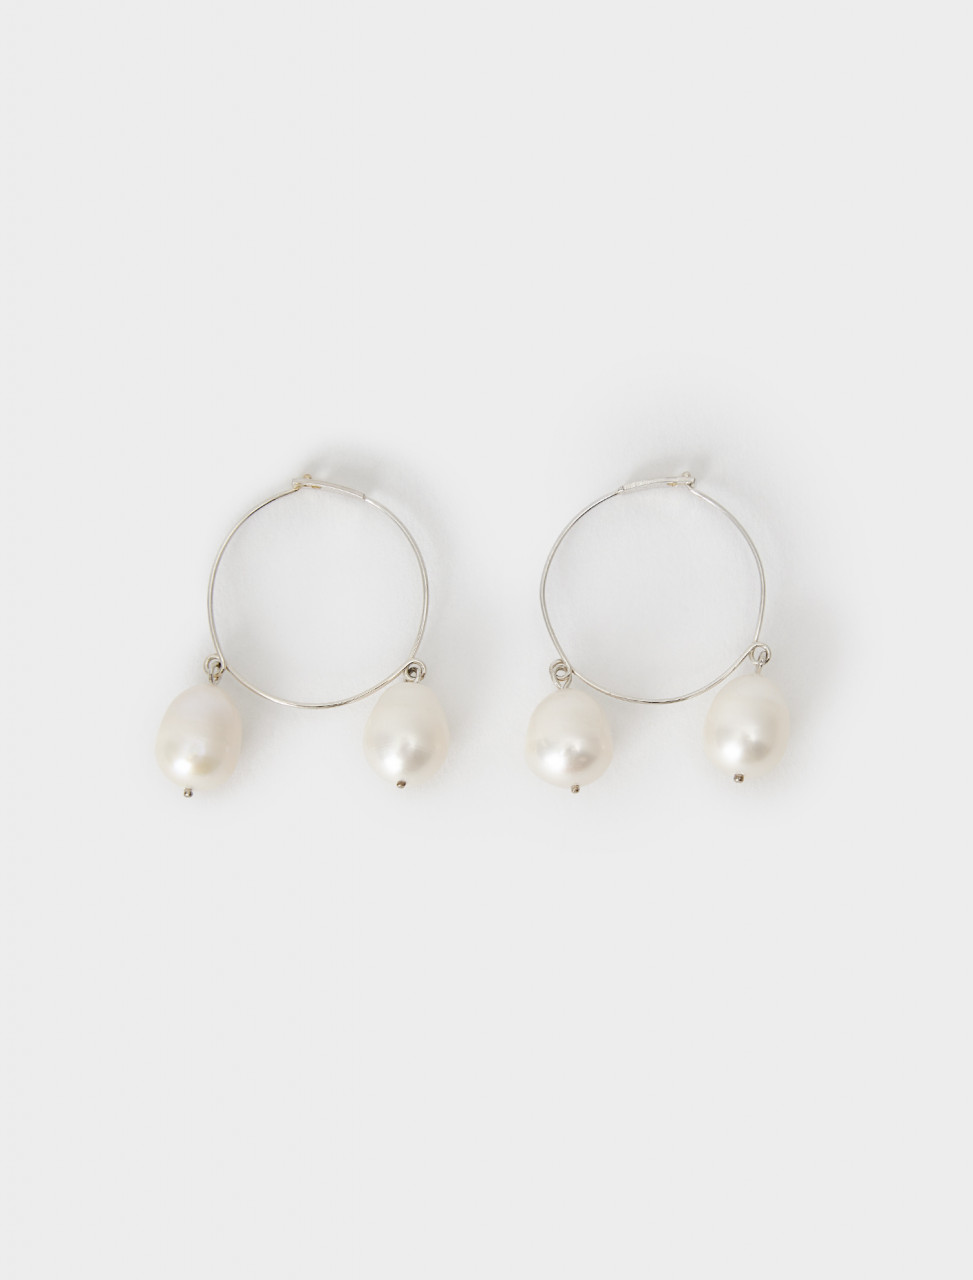 130-JSPR837369-WRS84017-041 Jil Sander Soft Earrings 04 in Silver